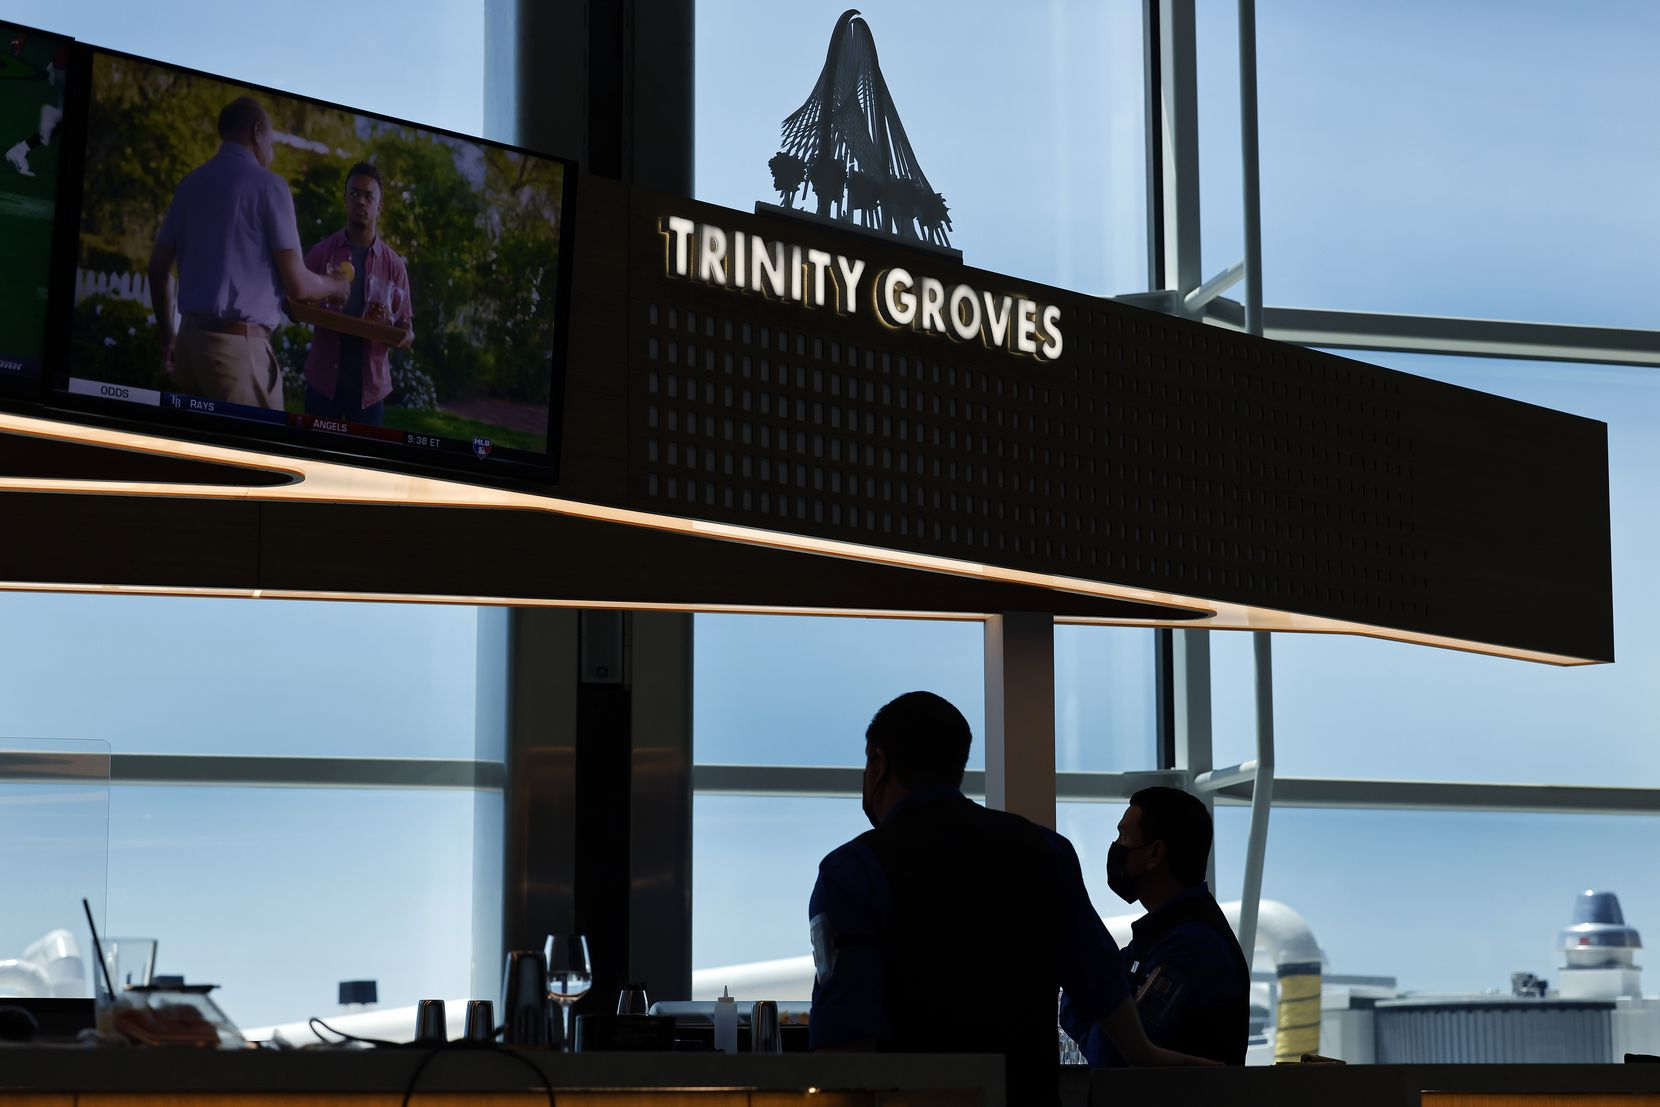 Star Concessions employees ready the Trinity Groves Bar, one of several new restaurants/bars/store fronts set to open in the Terminal D Extension at DFW International Airport.